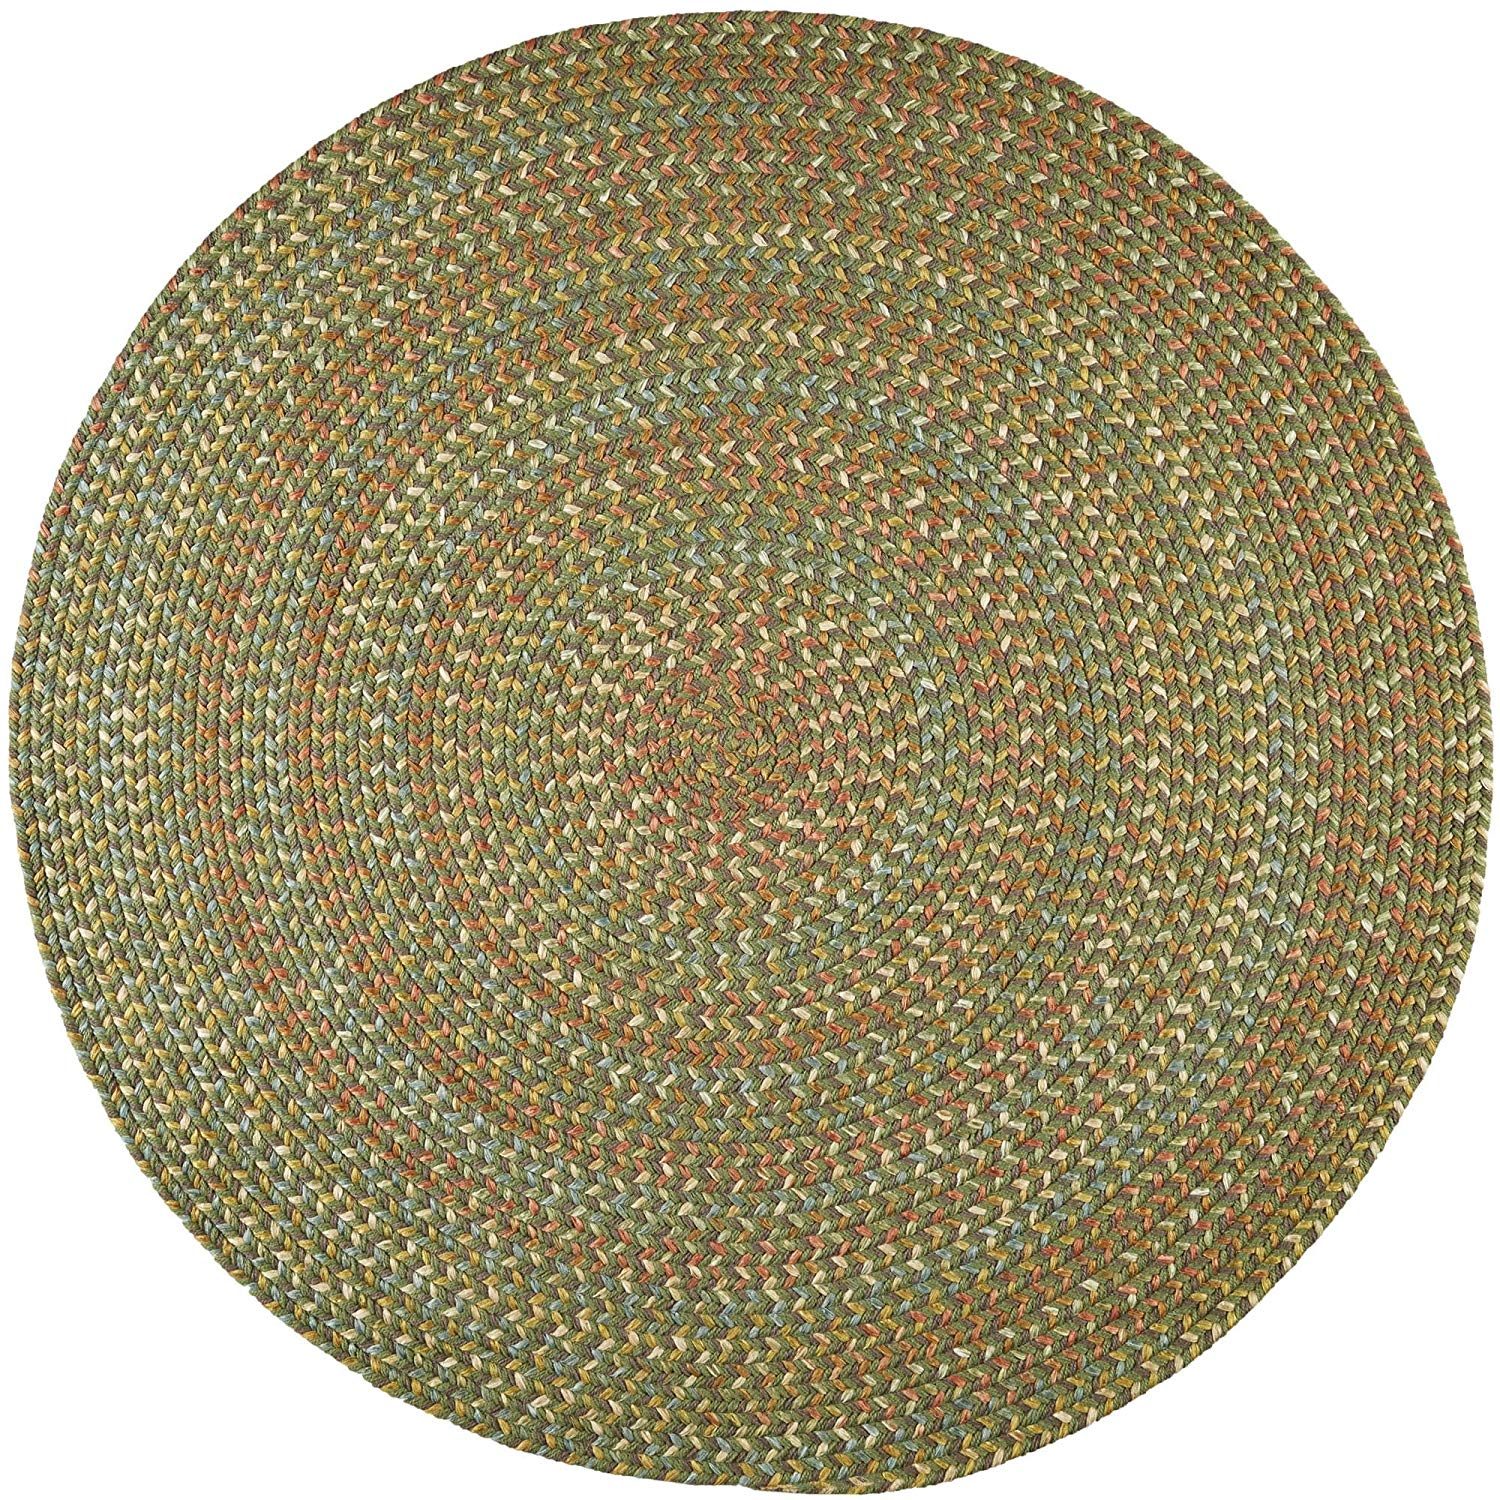 Super Area Rugs Confetti Braided Rug Traditional Rug Textured Durable Green Casual Decor Carpet, 10' Round